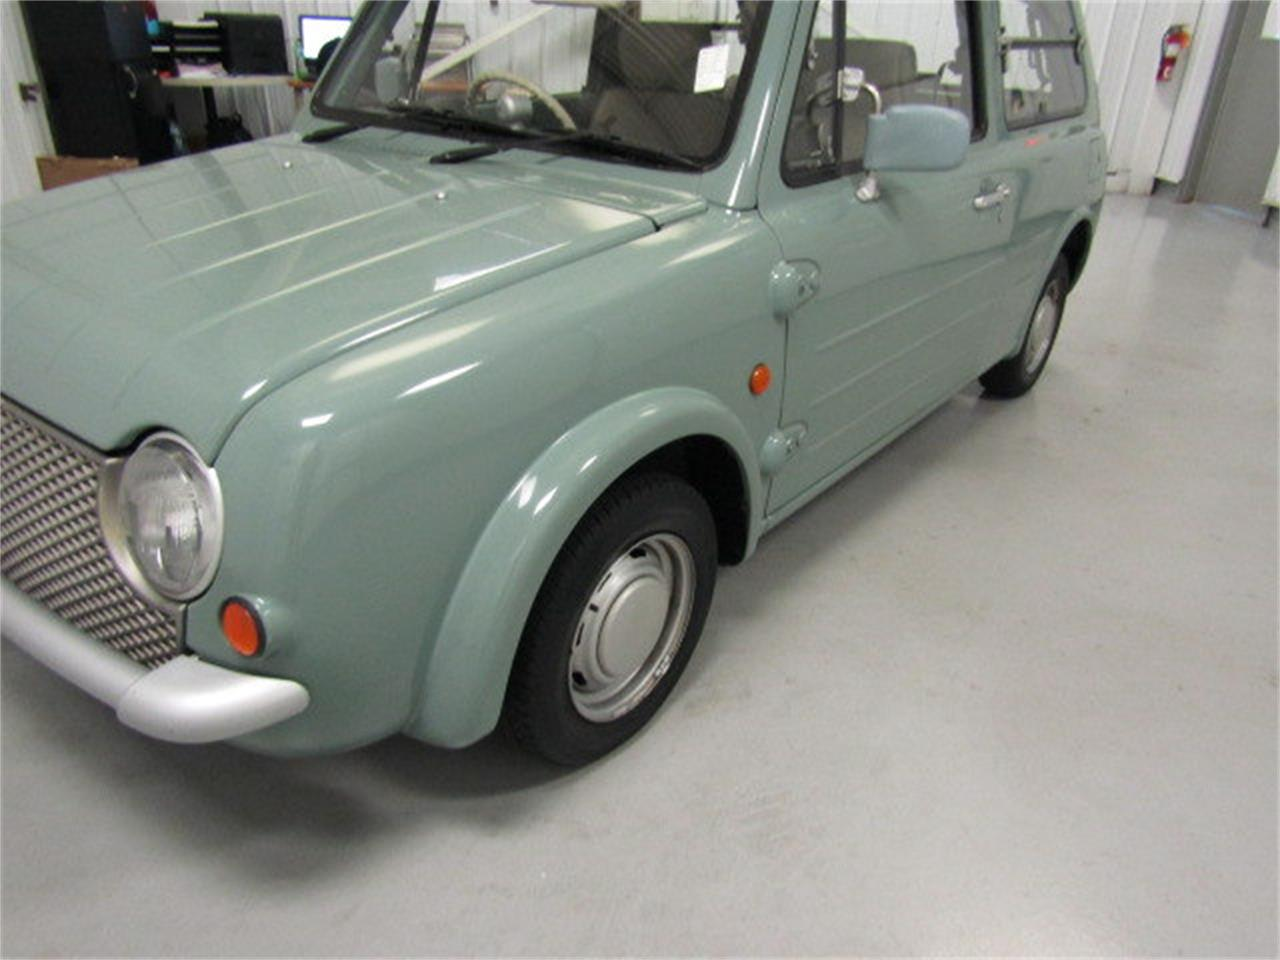 Large Picture of '90 Nissan Pao located in Christiansburg Virginia - $9,967.00 Offered by Duncan Imports & Classic Cars - LI63